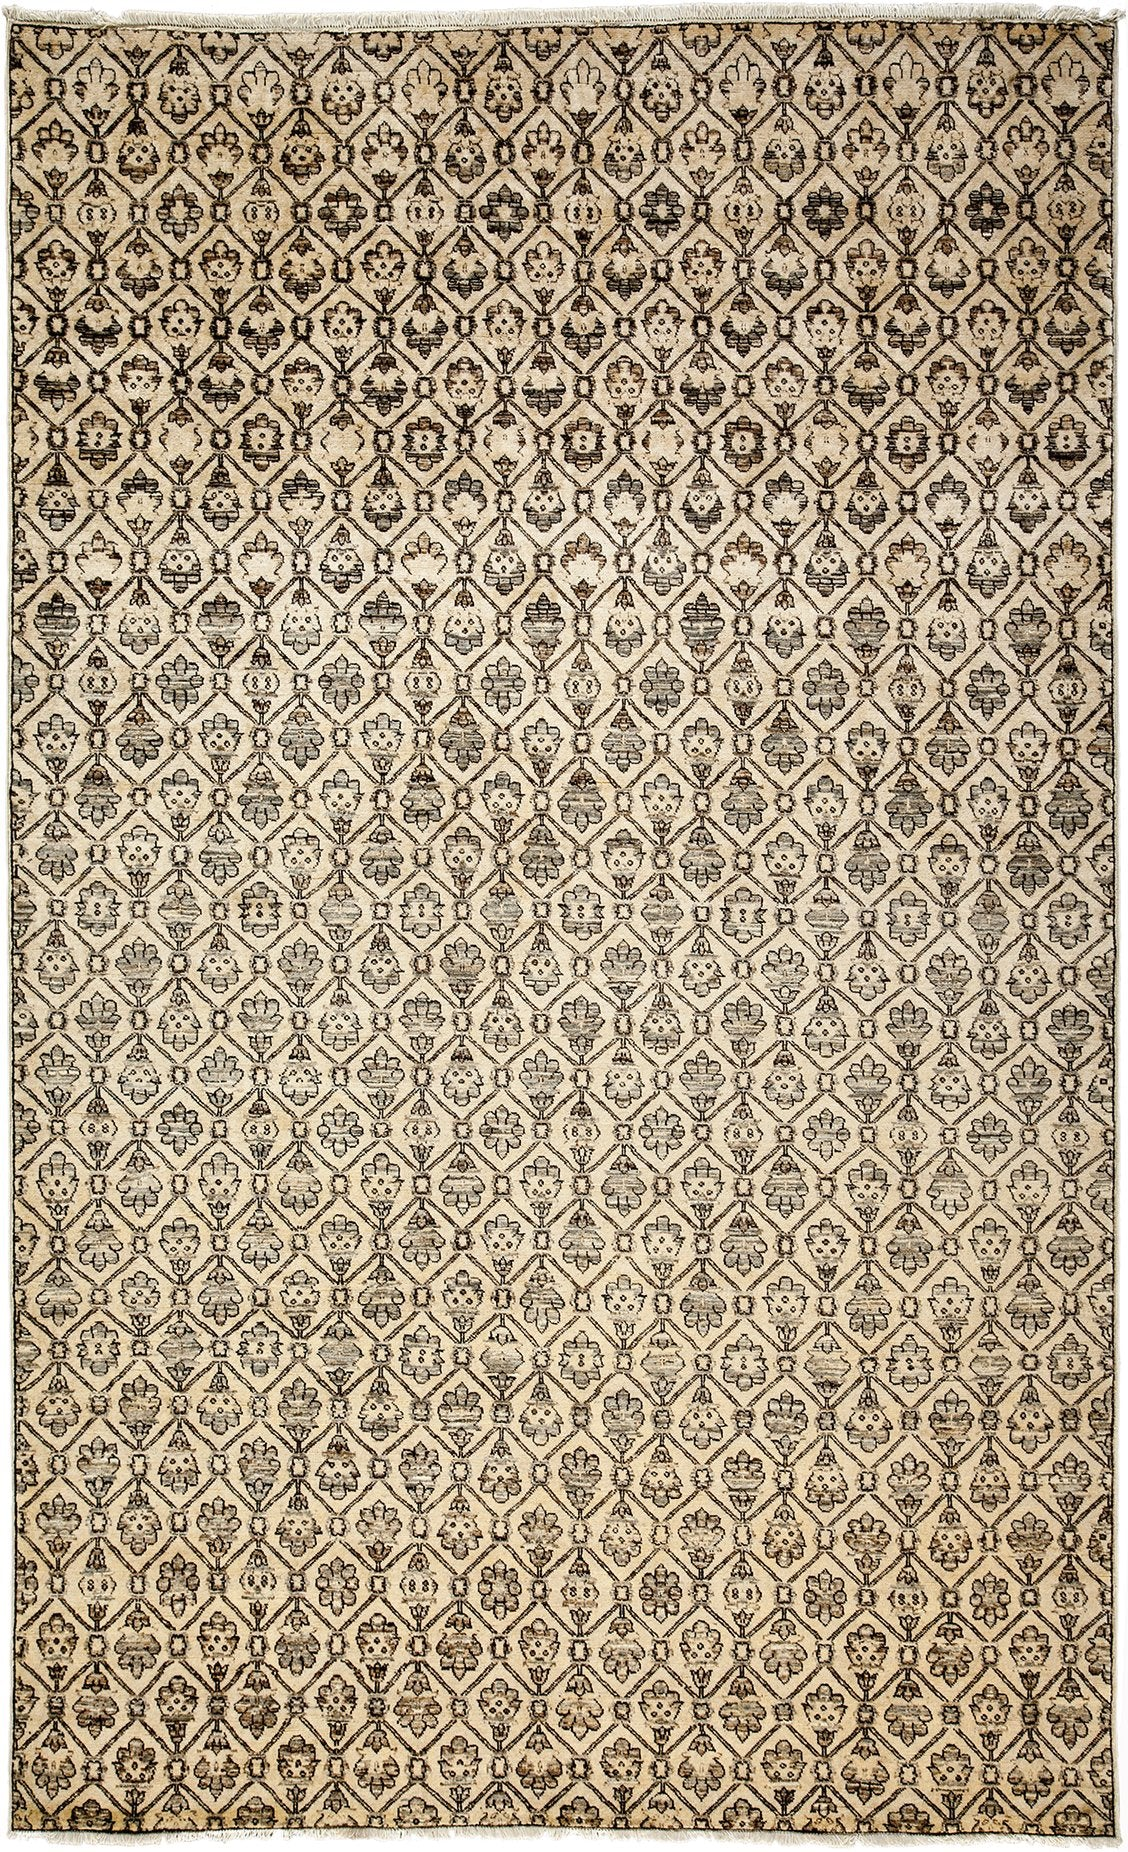 Classic Ivory Wool Area Rug 6 7 X 9 7 Lillian August